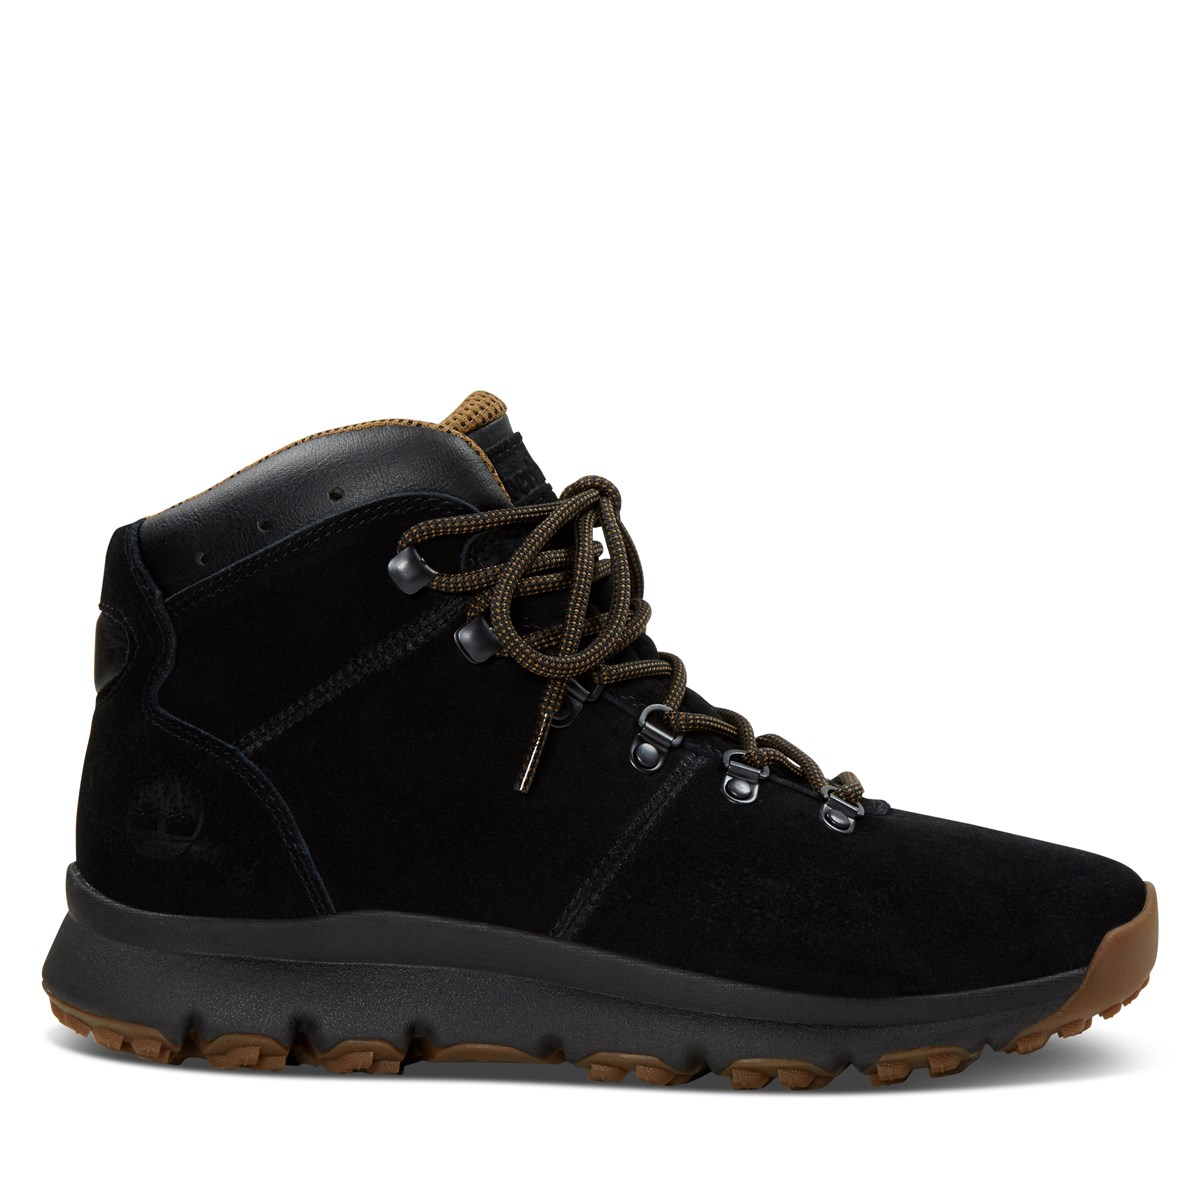 Men's World Hiker Mid Boots in Black